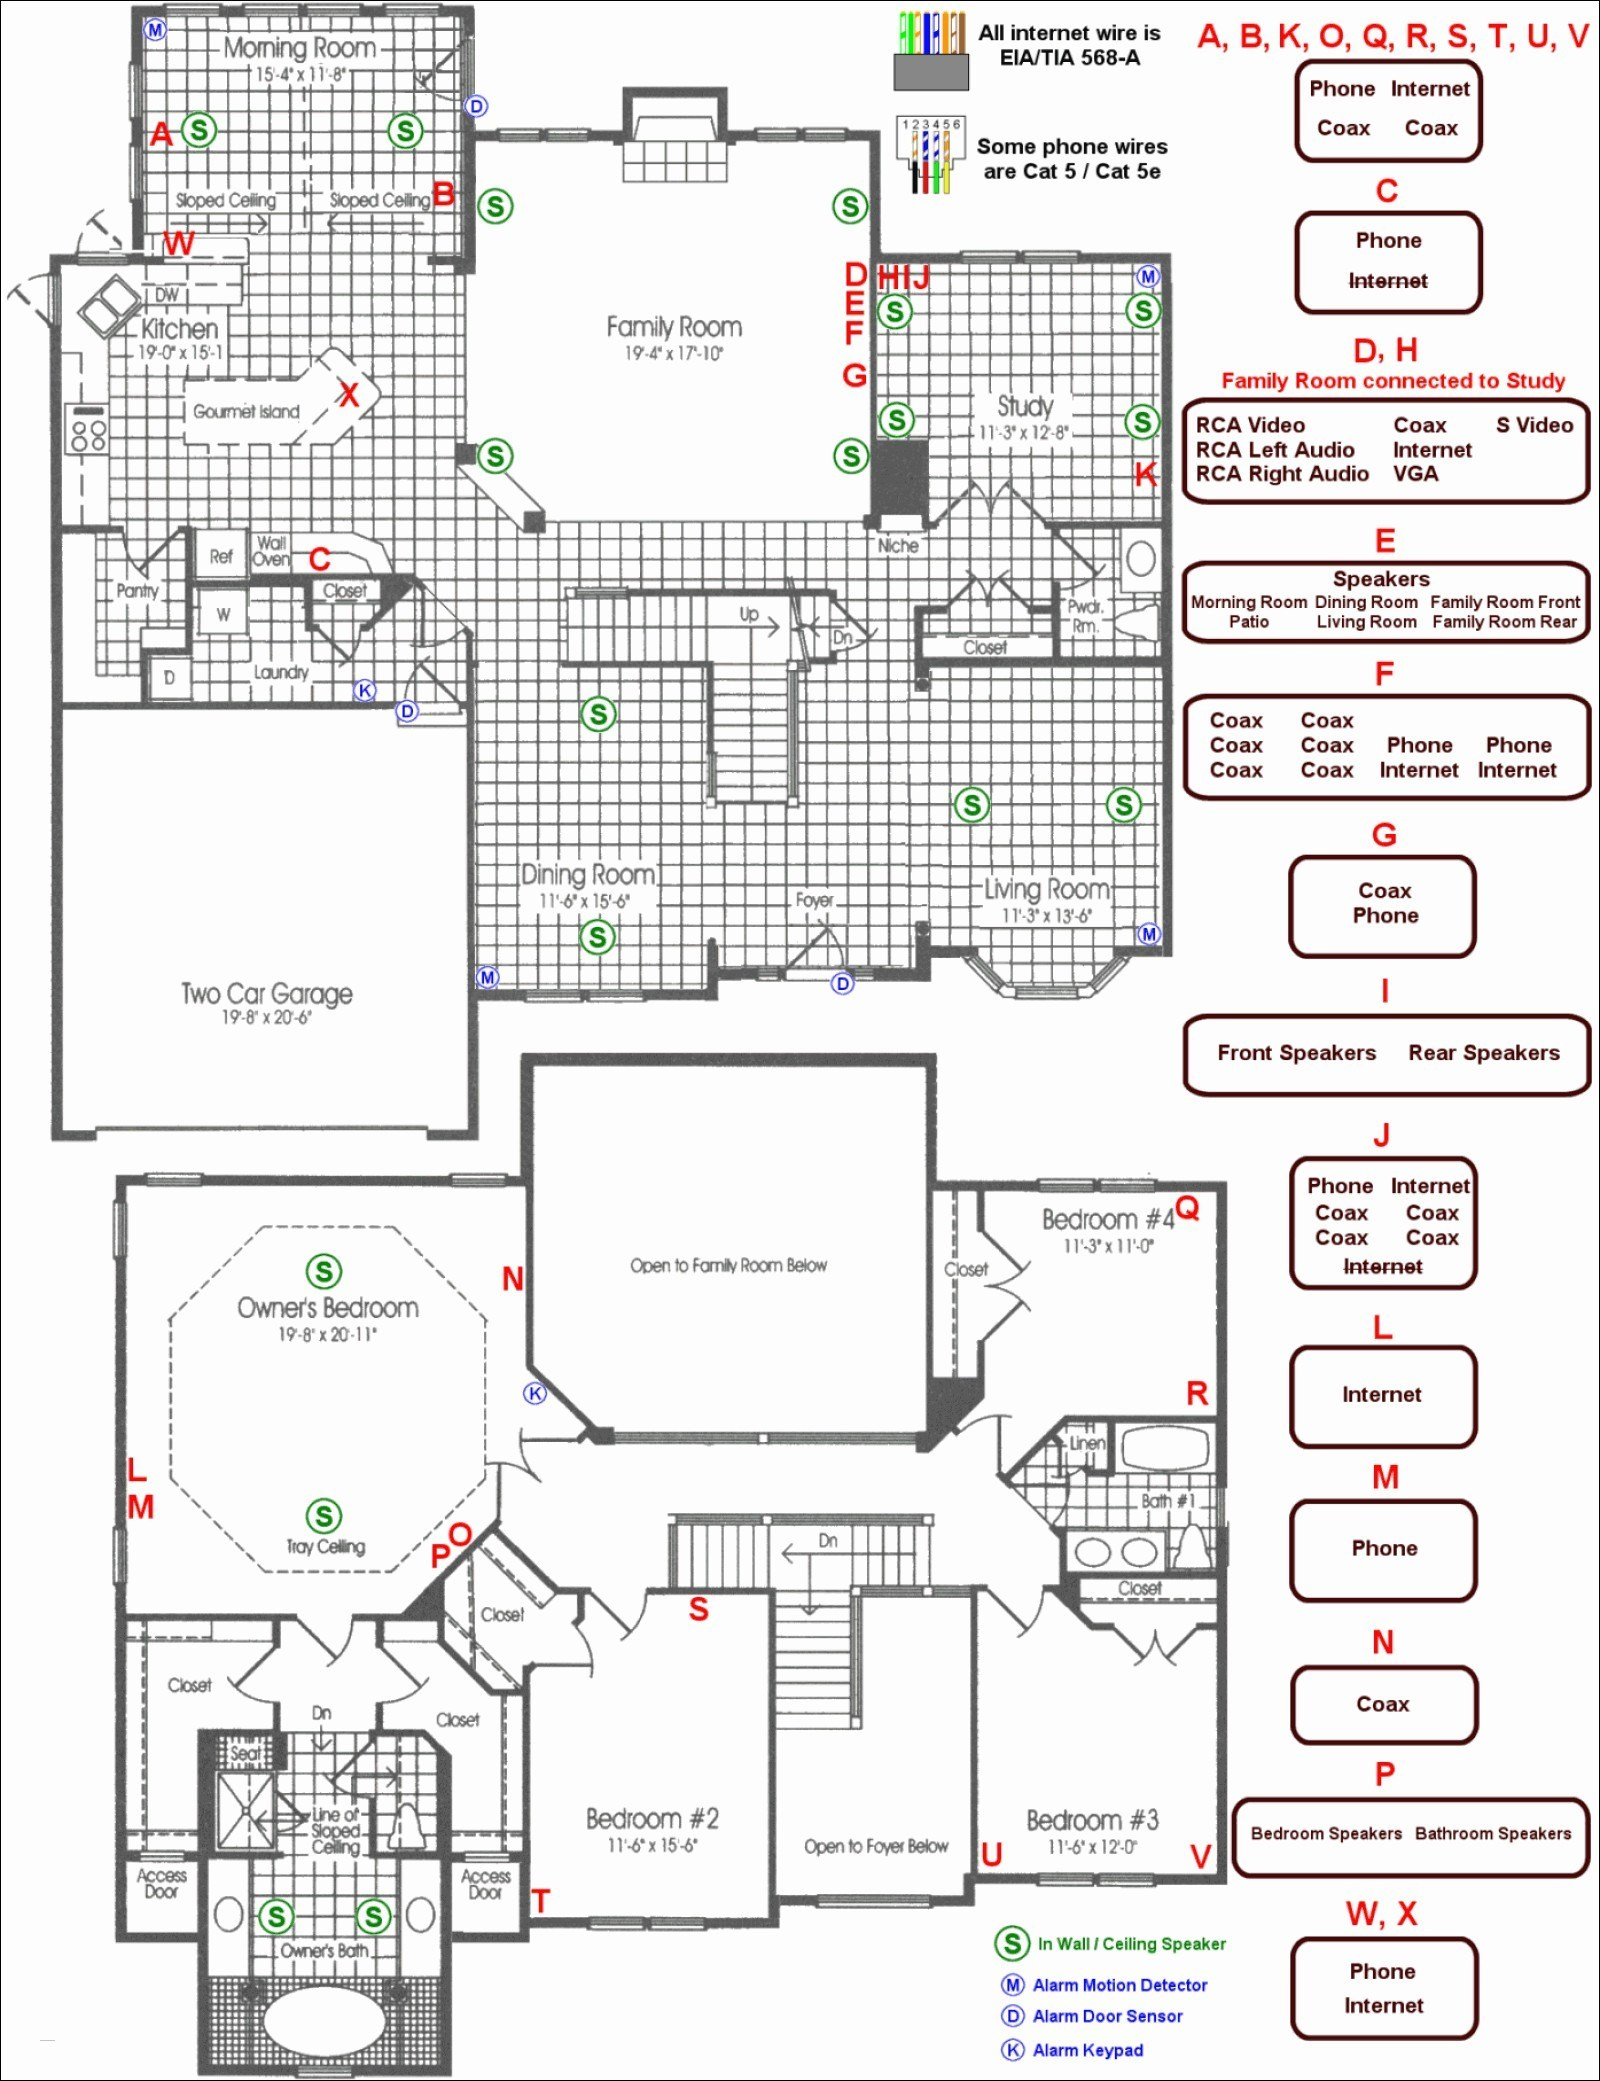 swann security camera n3960 wiring diagram Download-basic house wiring diagram Collection home wiring diagram Collection Aktive Crossoverfrequenzweiche Mit Max4478 360customs Crossover 4-g